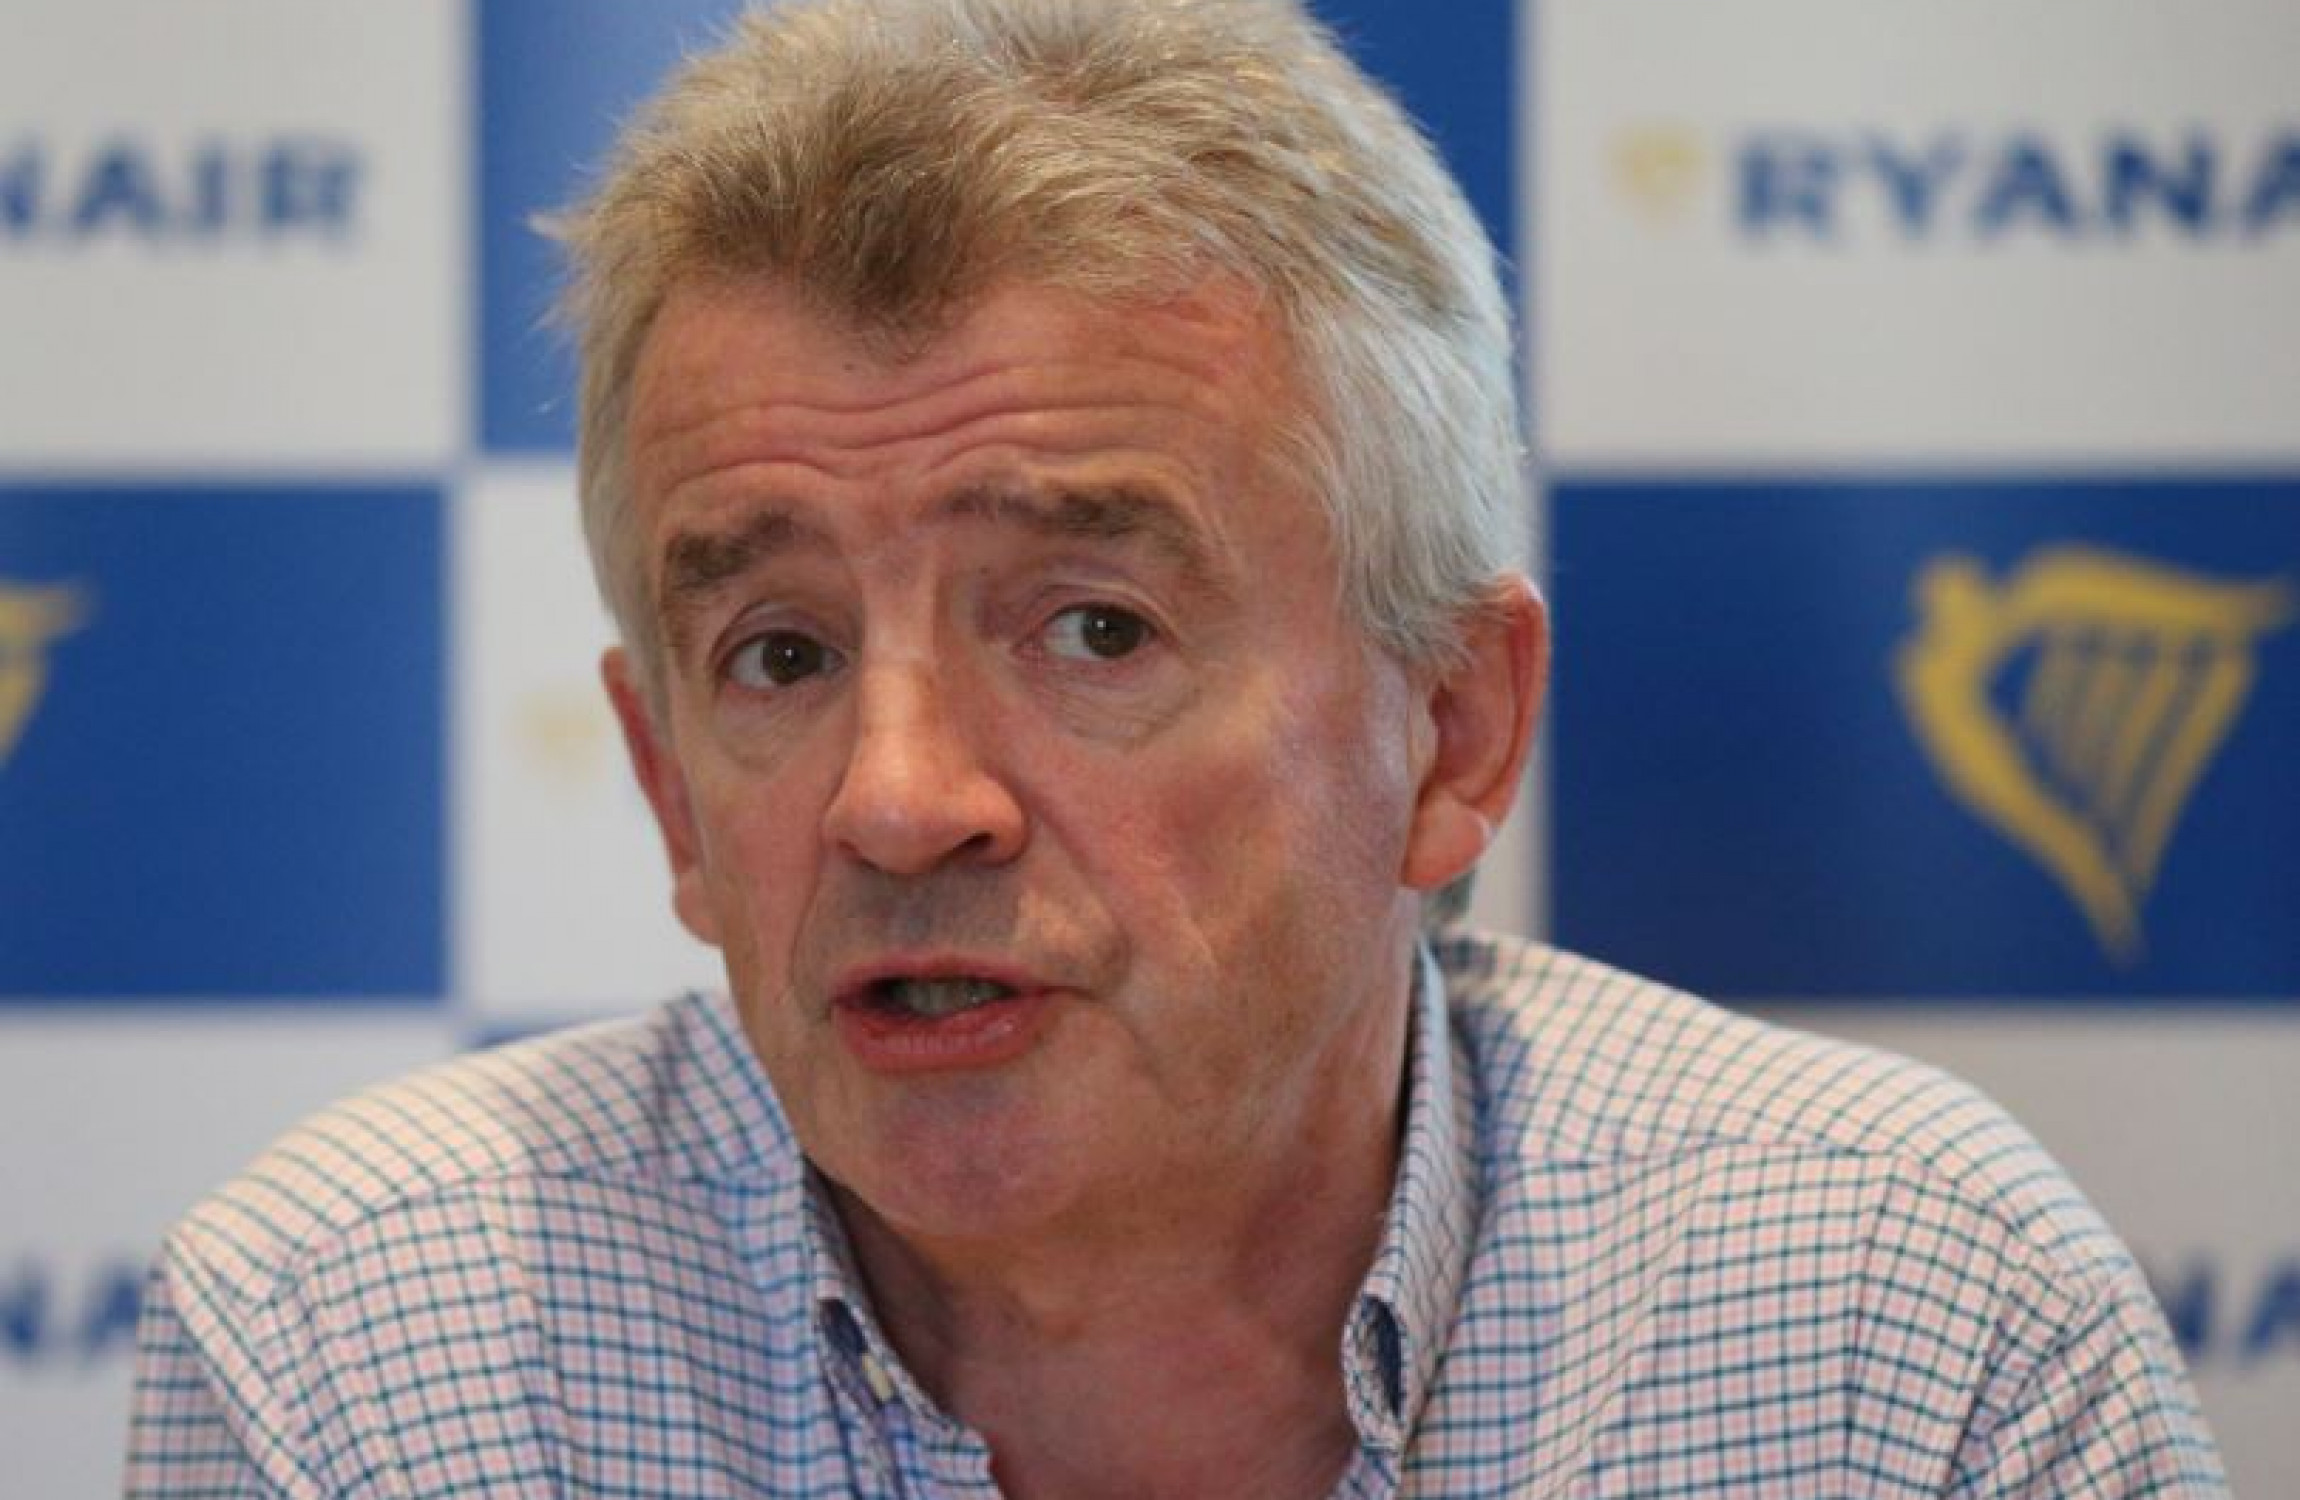 Ryanair to cut 40-50 flights a day to cover holidays